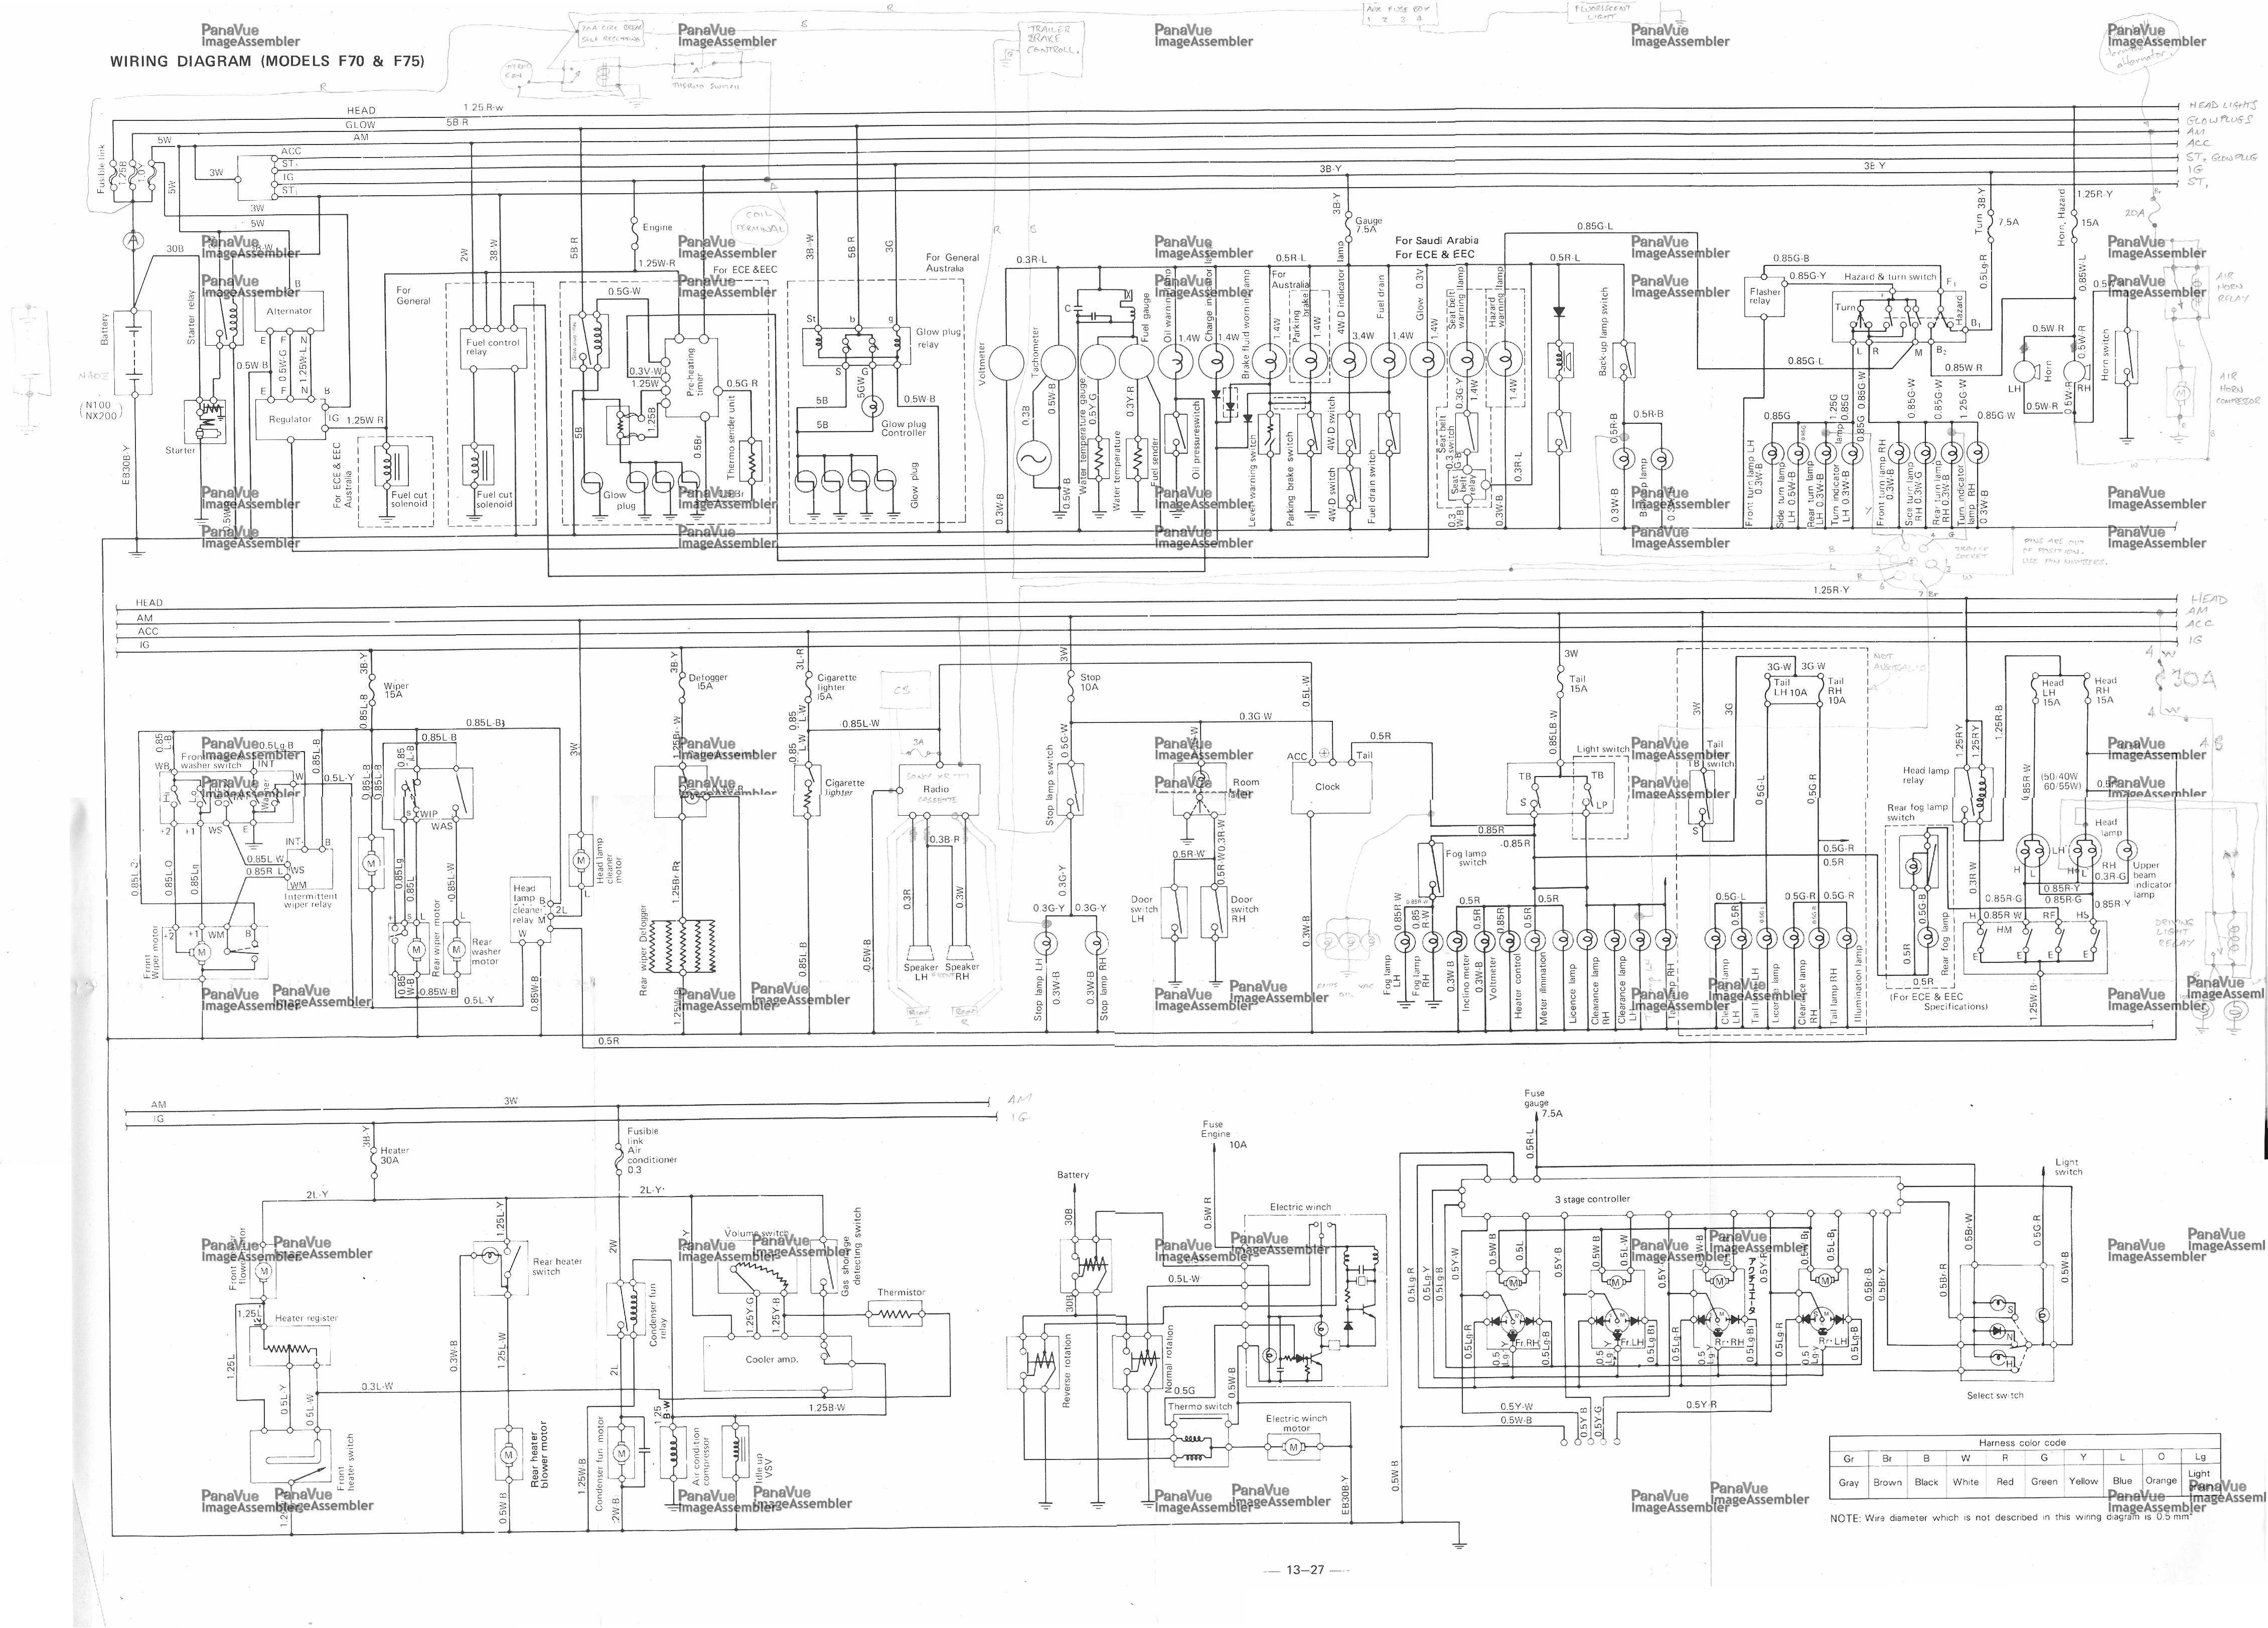 yamaha wiring schematic 1887 exciter house wiring diagram symbols \u2022  yamaha g11 wiring schematic wiring diagrams rh pinupstudio co yamaha diagrams yamaha 80 cc electrical diagrams